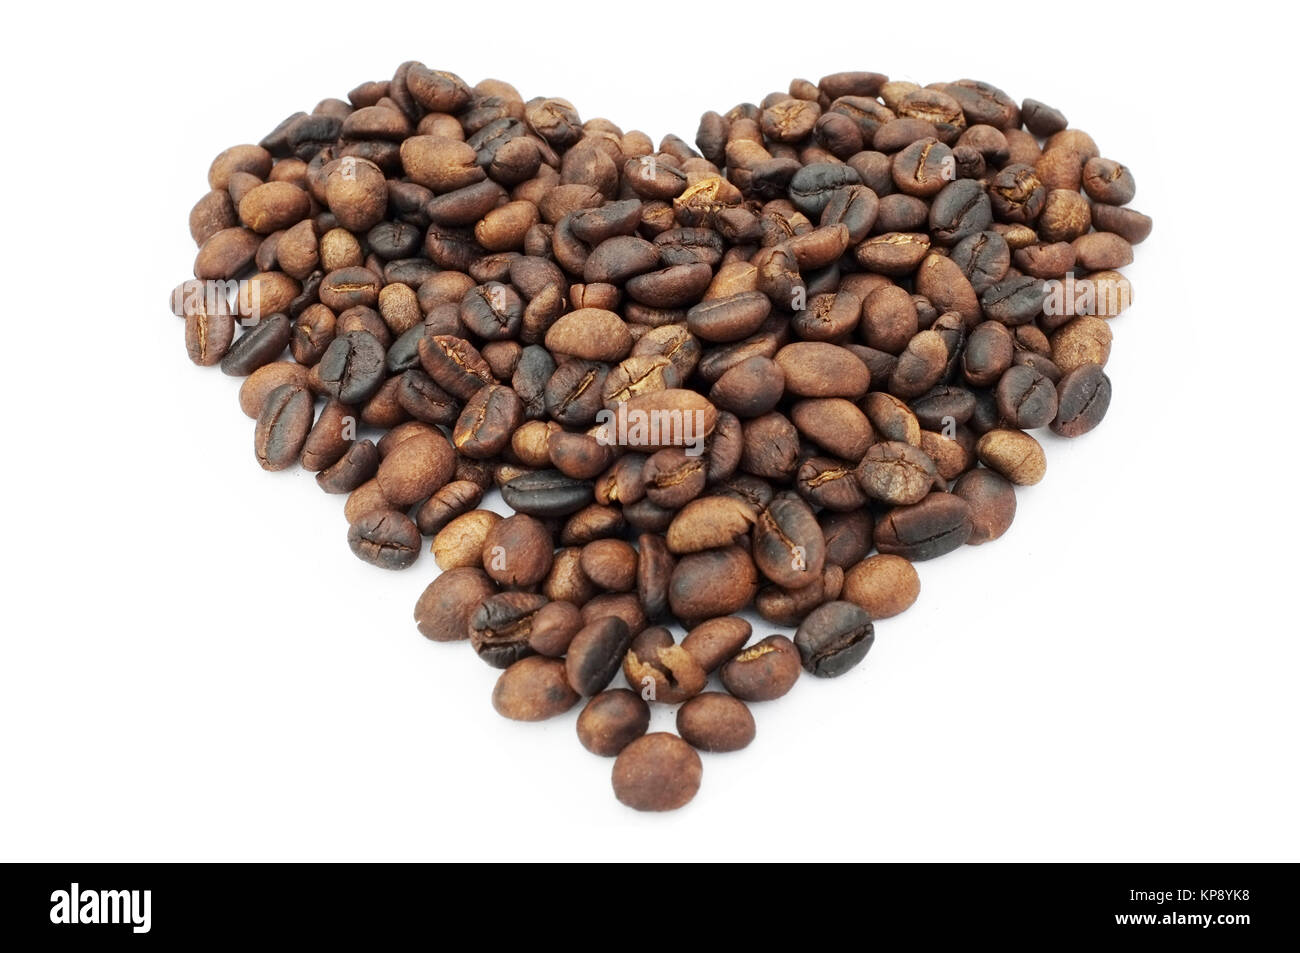 Heart shape coffee beans on white background Stock Photo